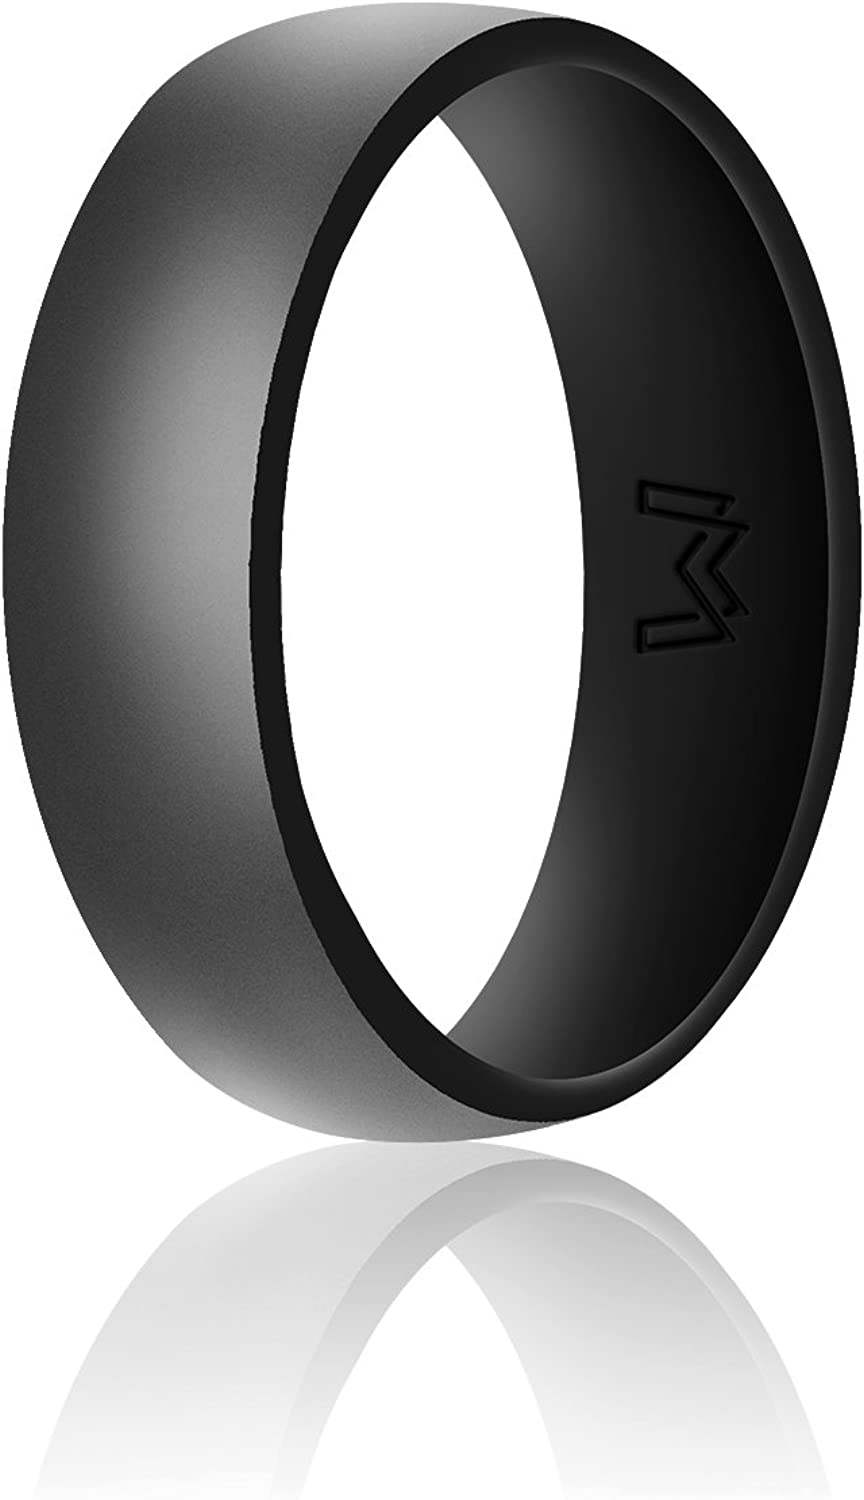 WIGERLON Mens Silicone Wedding Ring&Rubber Wedding Bands for Workout and Sports Width 8mm